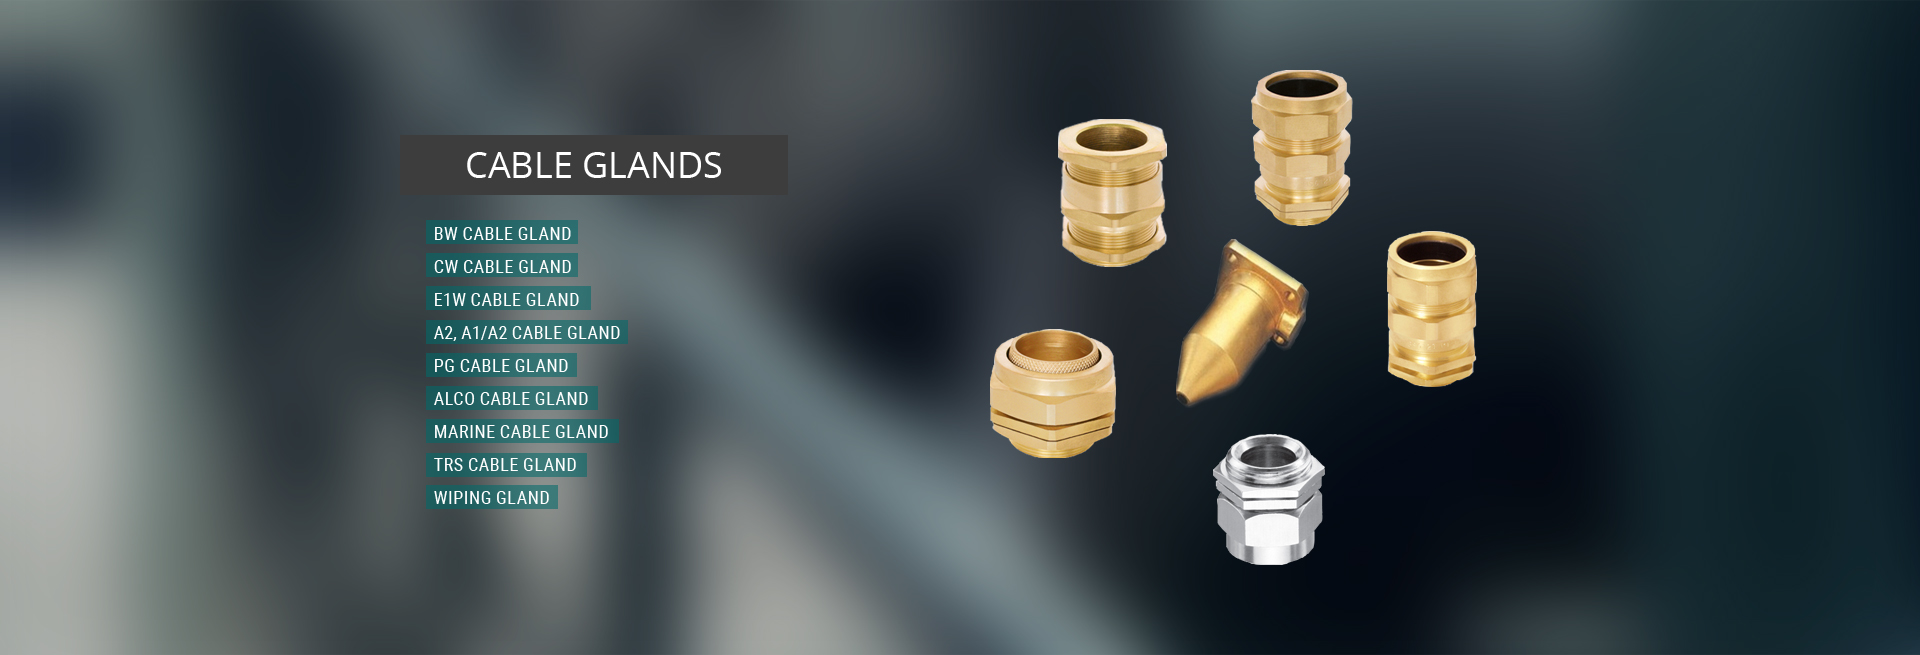 Cable Glands India